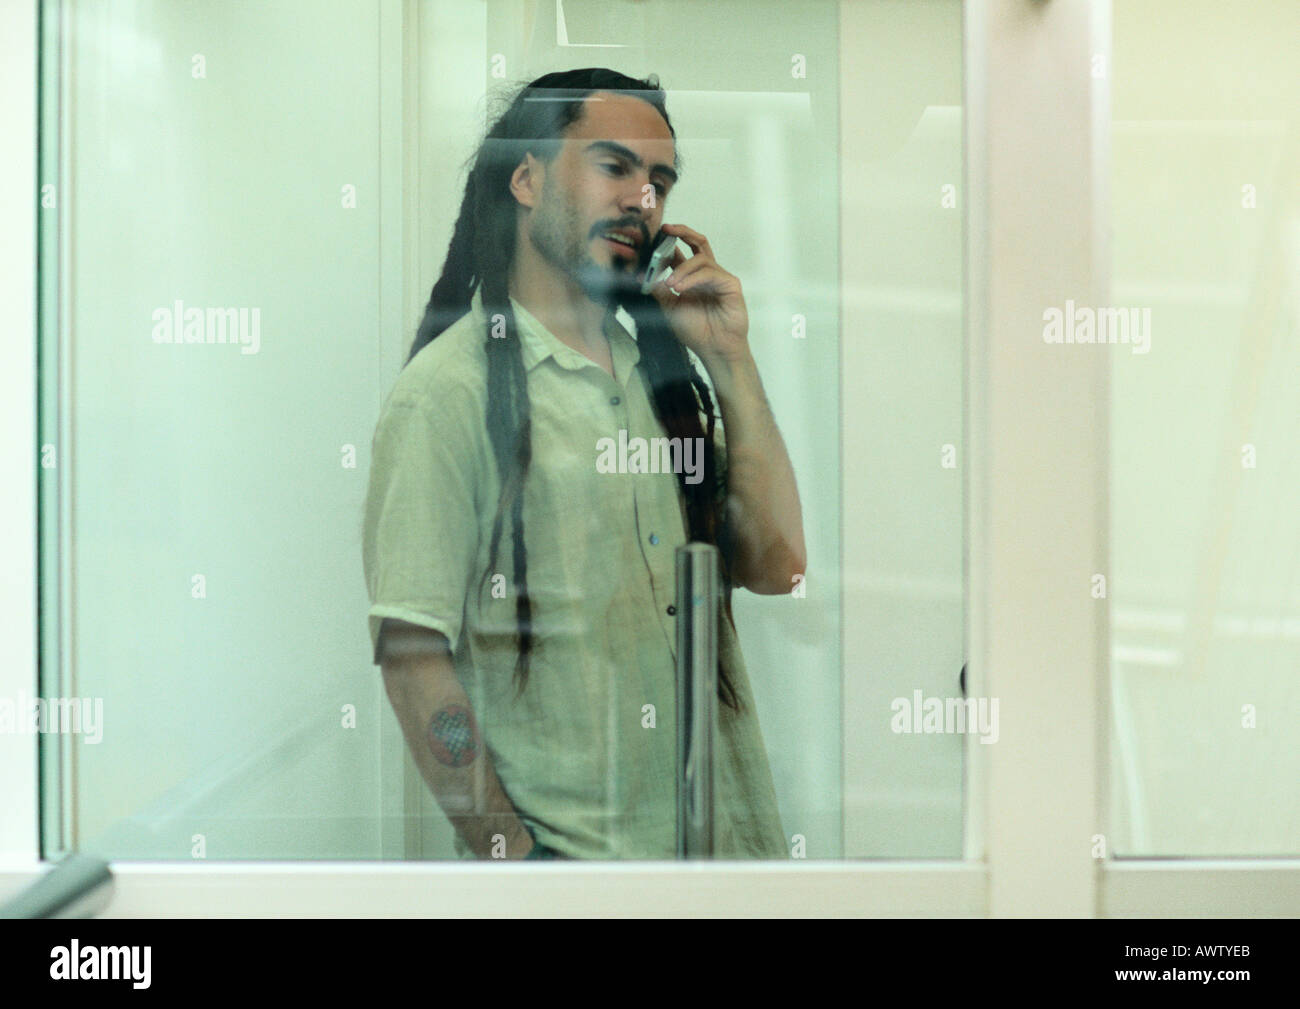 Man on cell phone, view through glass - Stock Image